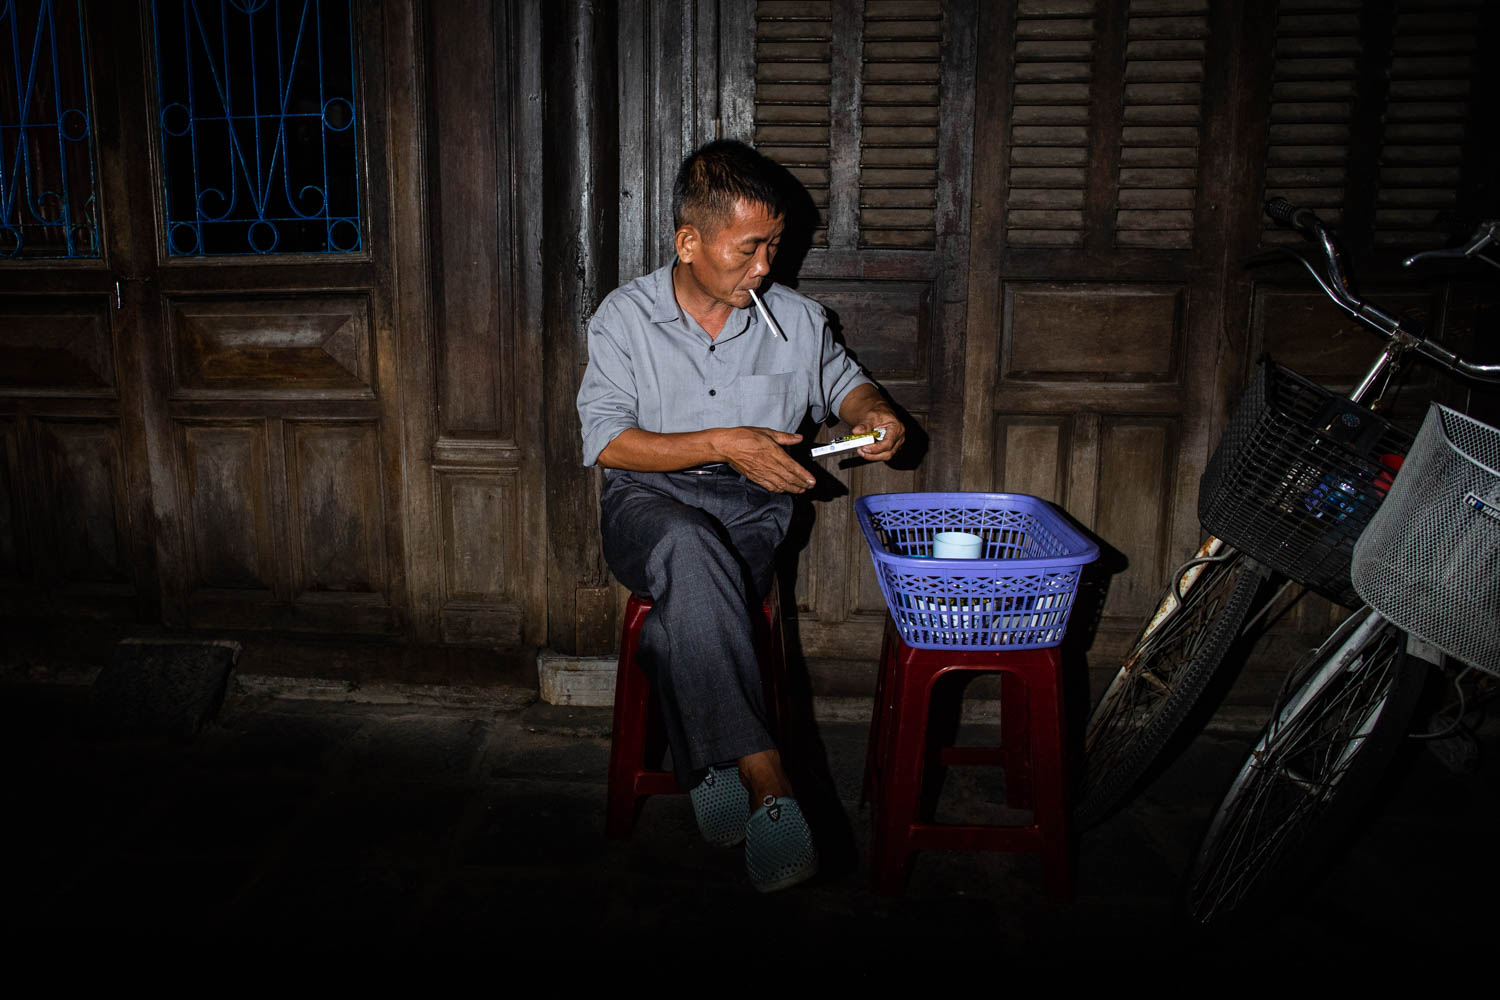 PEOPLE OF VIETNAM - HOI AN, HA LONG, HANOI